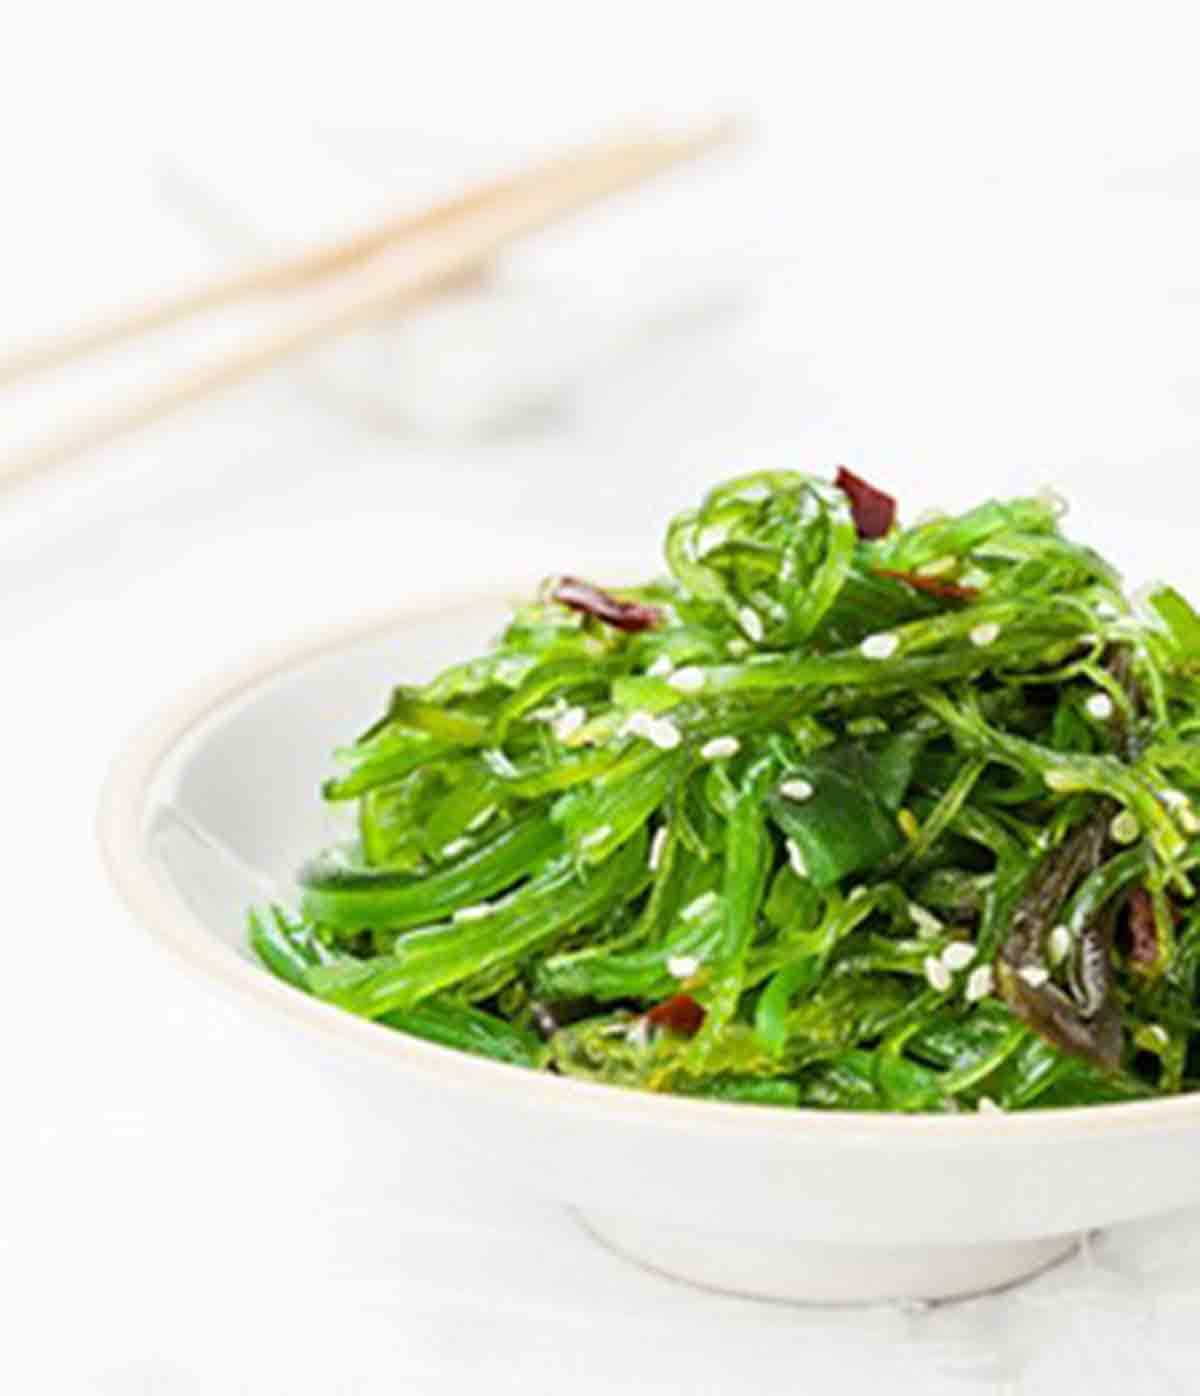 Seaweed could be the answer to losing weight